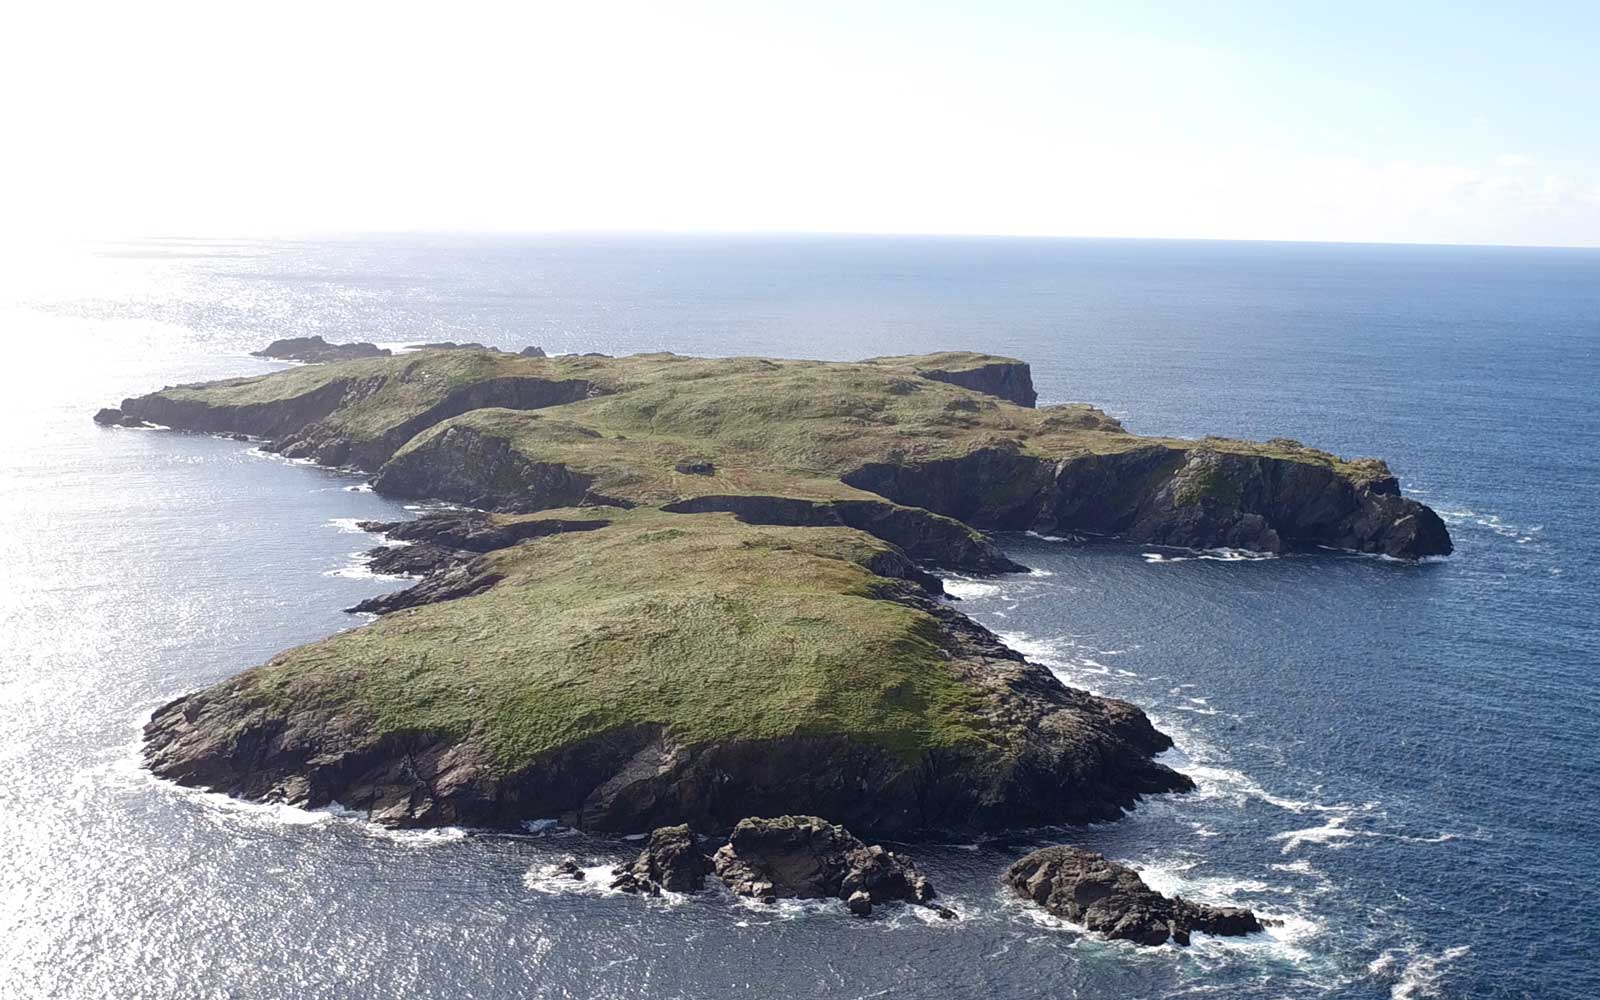 Live Out Your Emerald Fantasies on This Private Island for Sale in Ireland for $1.4 Million